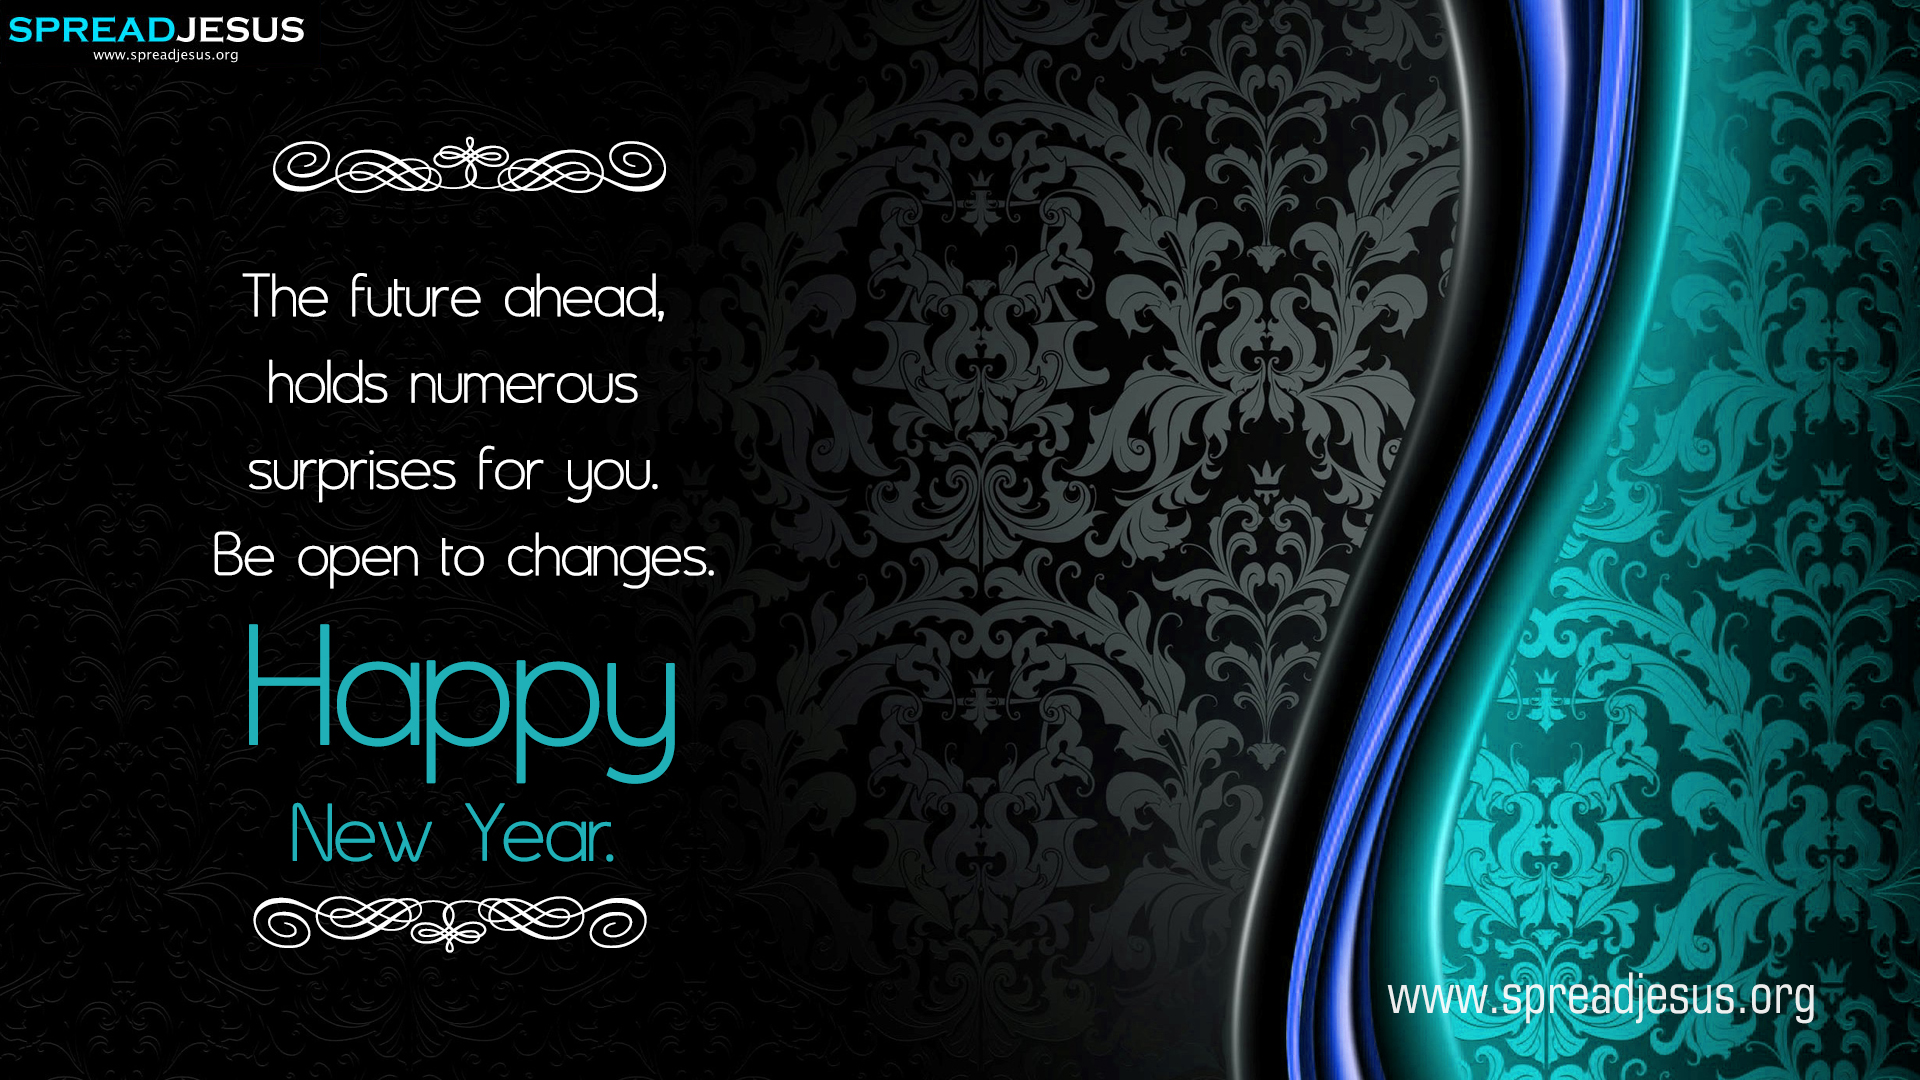 Happy New Year Hd Wallpapers Free Download-1 Happy New Year 2017